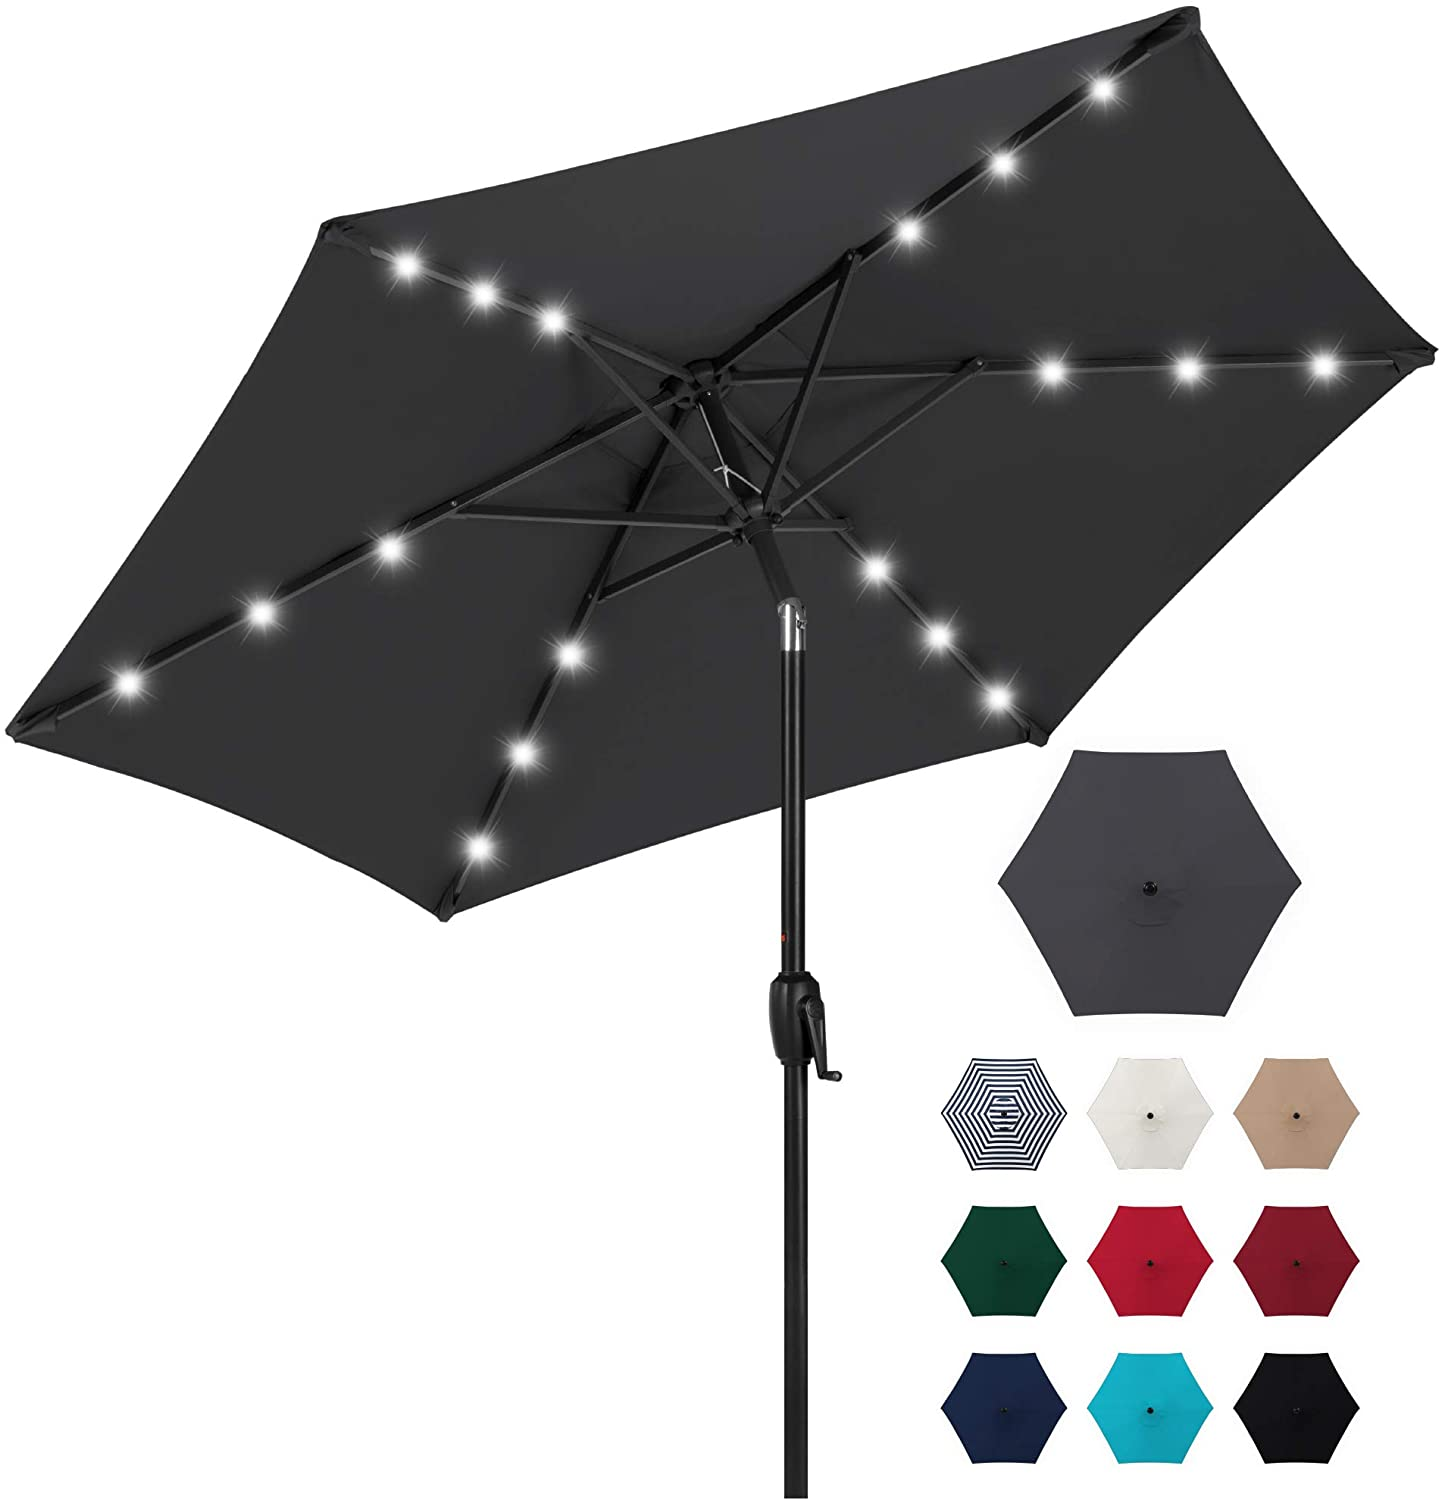 Best Choice Products 7.5ft Outdoor Solar Market Table Patio Umbrella for Deck, Pool w/Tilt, Crank, LED Lights - Gray